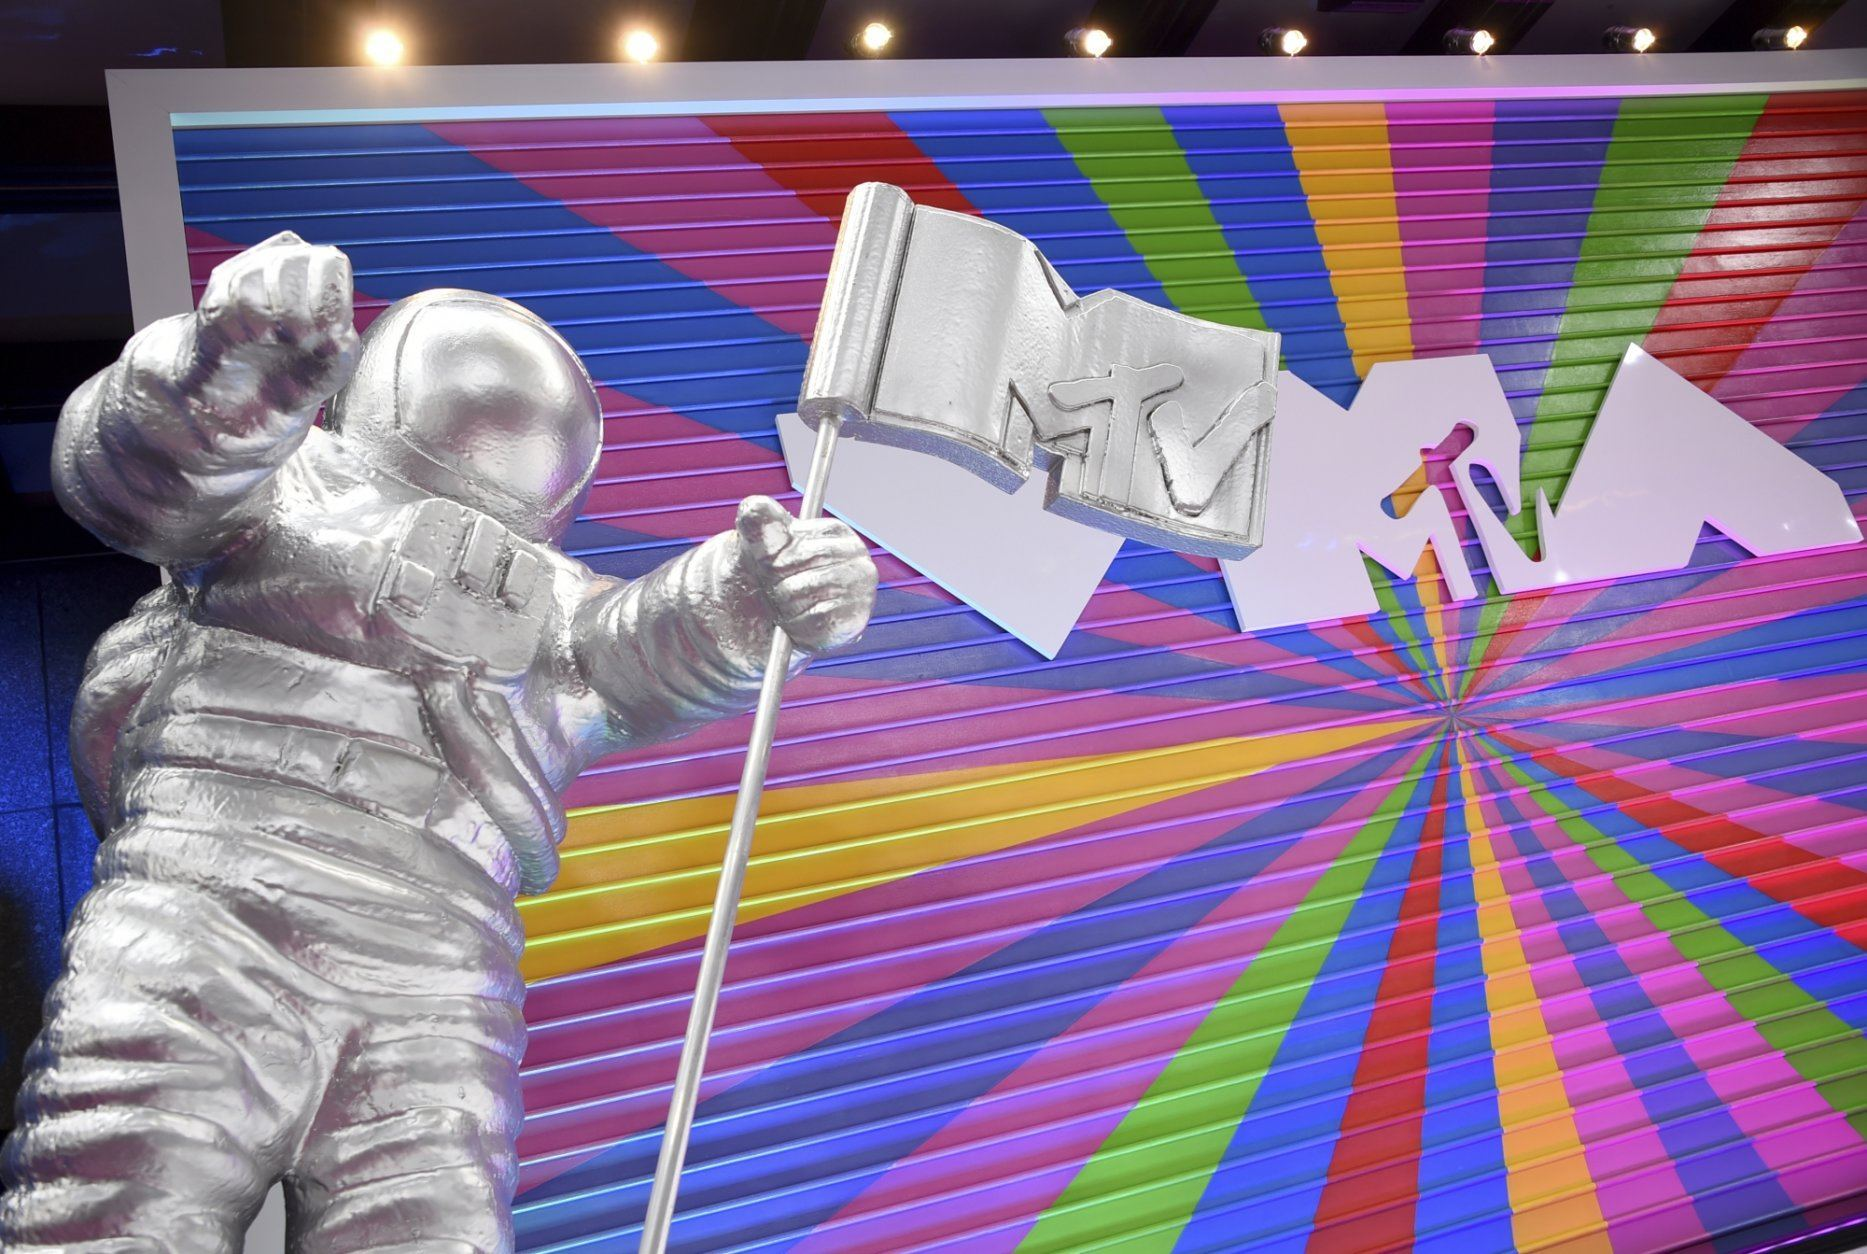 In this Monday, Aug. 20, 2018, file photo, a statue of the MTV Moon Man appears on the red carpet at the MTV Video Music Awards at Radio City Music Hall in New York. 2019 is the year of Missy Elliott: The rap icon will earn the Michael Jackson Video Vanguard Award at the MTV Video Music Awards in New Jersey. Performers include Elliott, Taylor Swift, Lizzo, Normani, Bad Bunny, Shawn Mendes, Camila Cabello, H.E.R., J Balvin, Lil Nas X, Rosalia, Ozuna and Jonas Brothers. (Photo by Evan Agostini/Invision/AP, File)